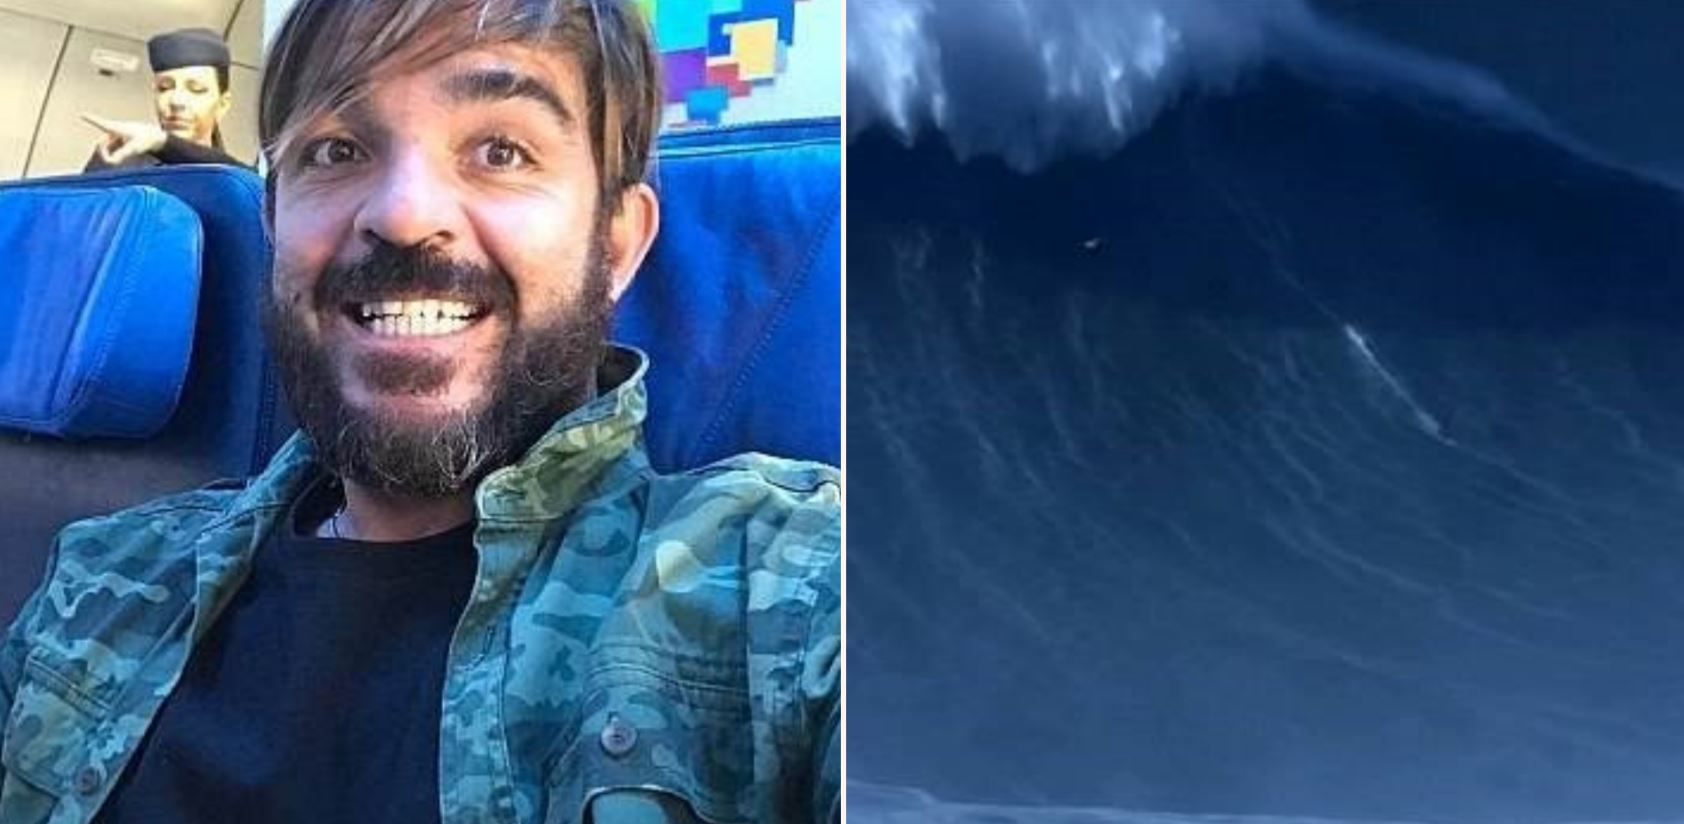 Brazilian surfer breaks world record with f*cken monster wave